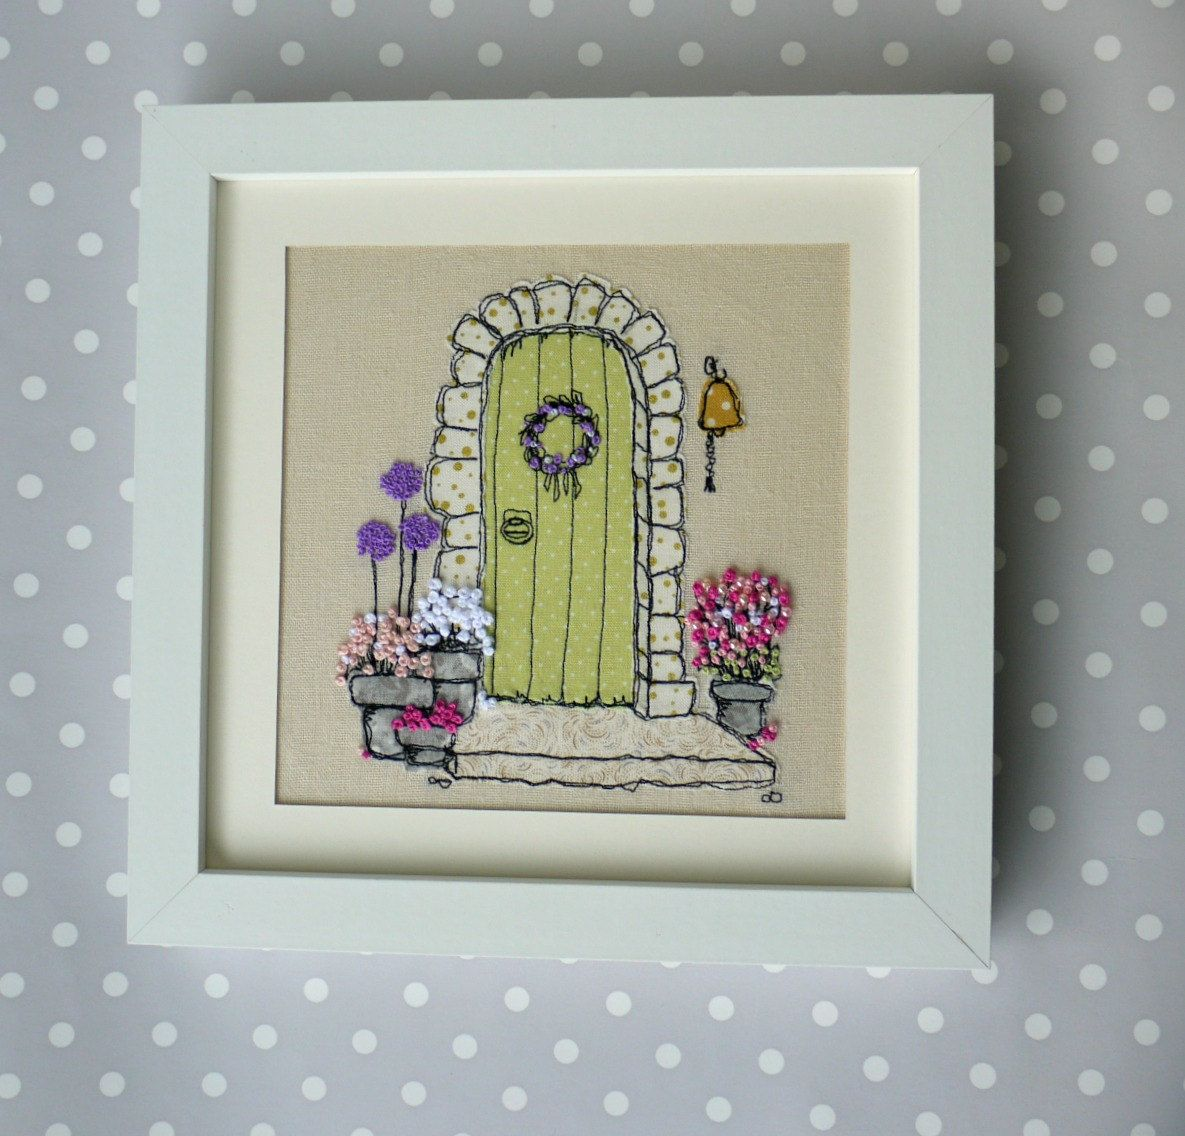 Handmade country cottage embroidered picture ideal for new home or